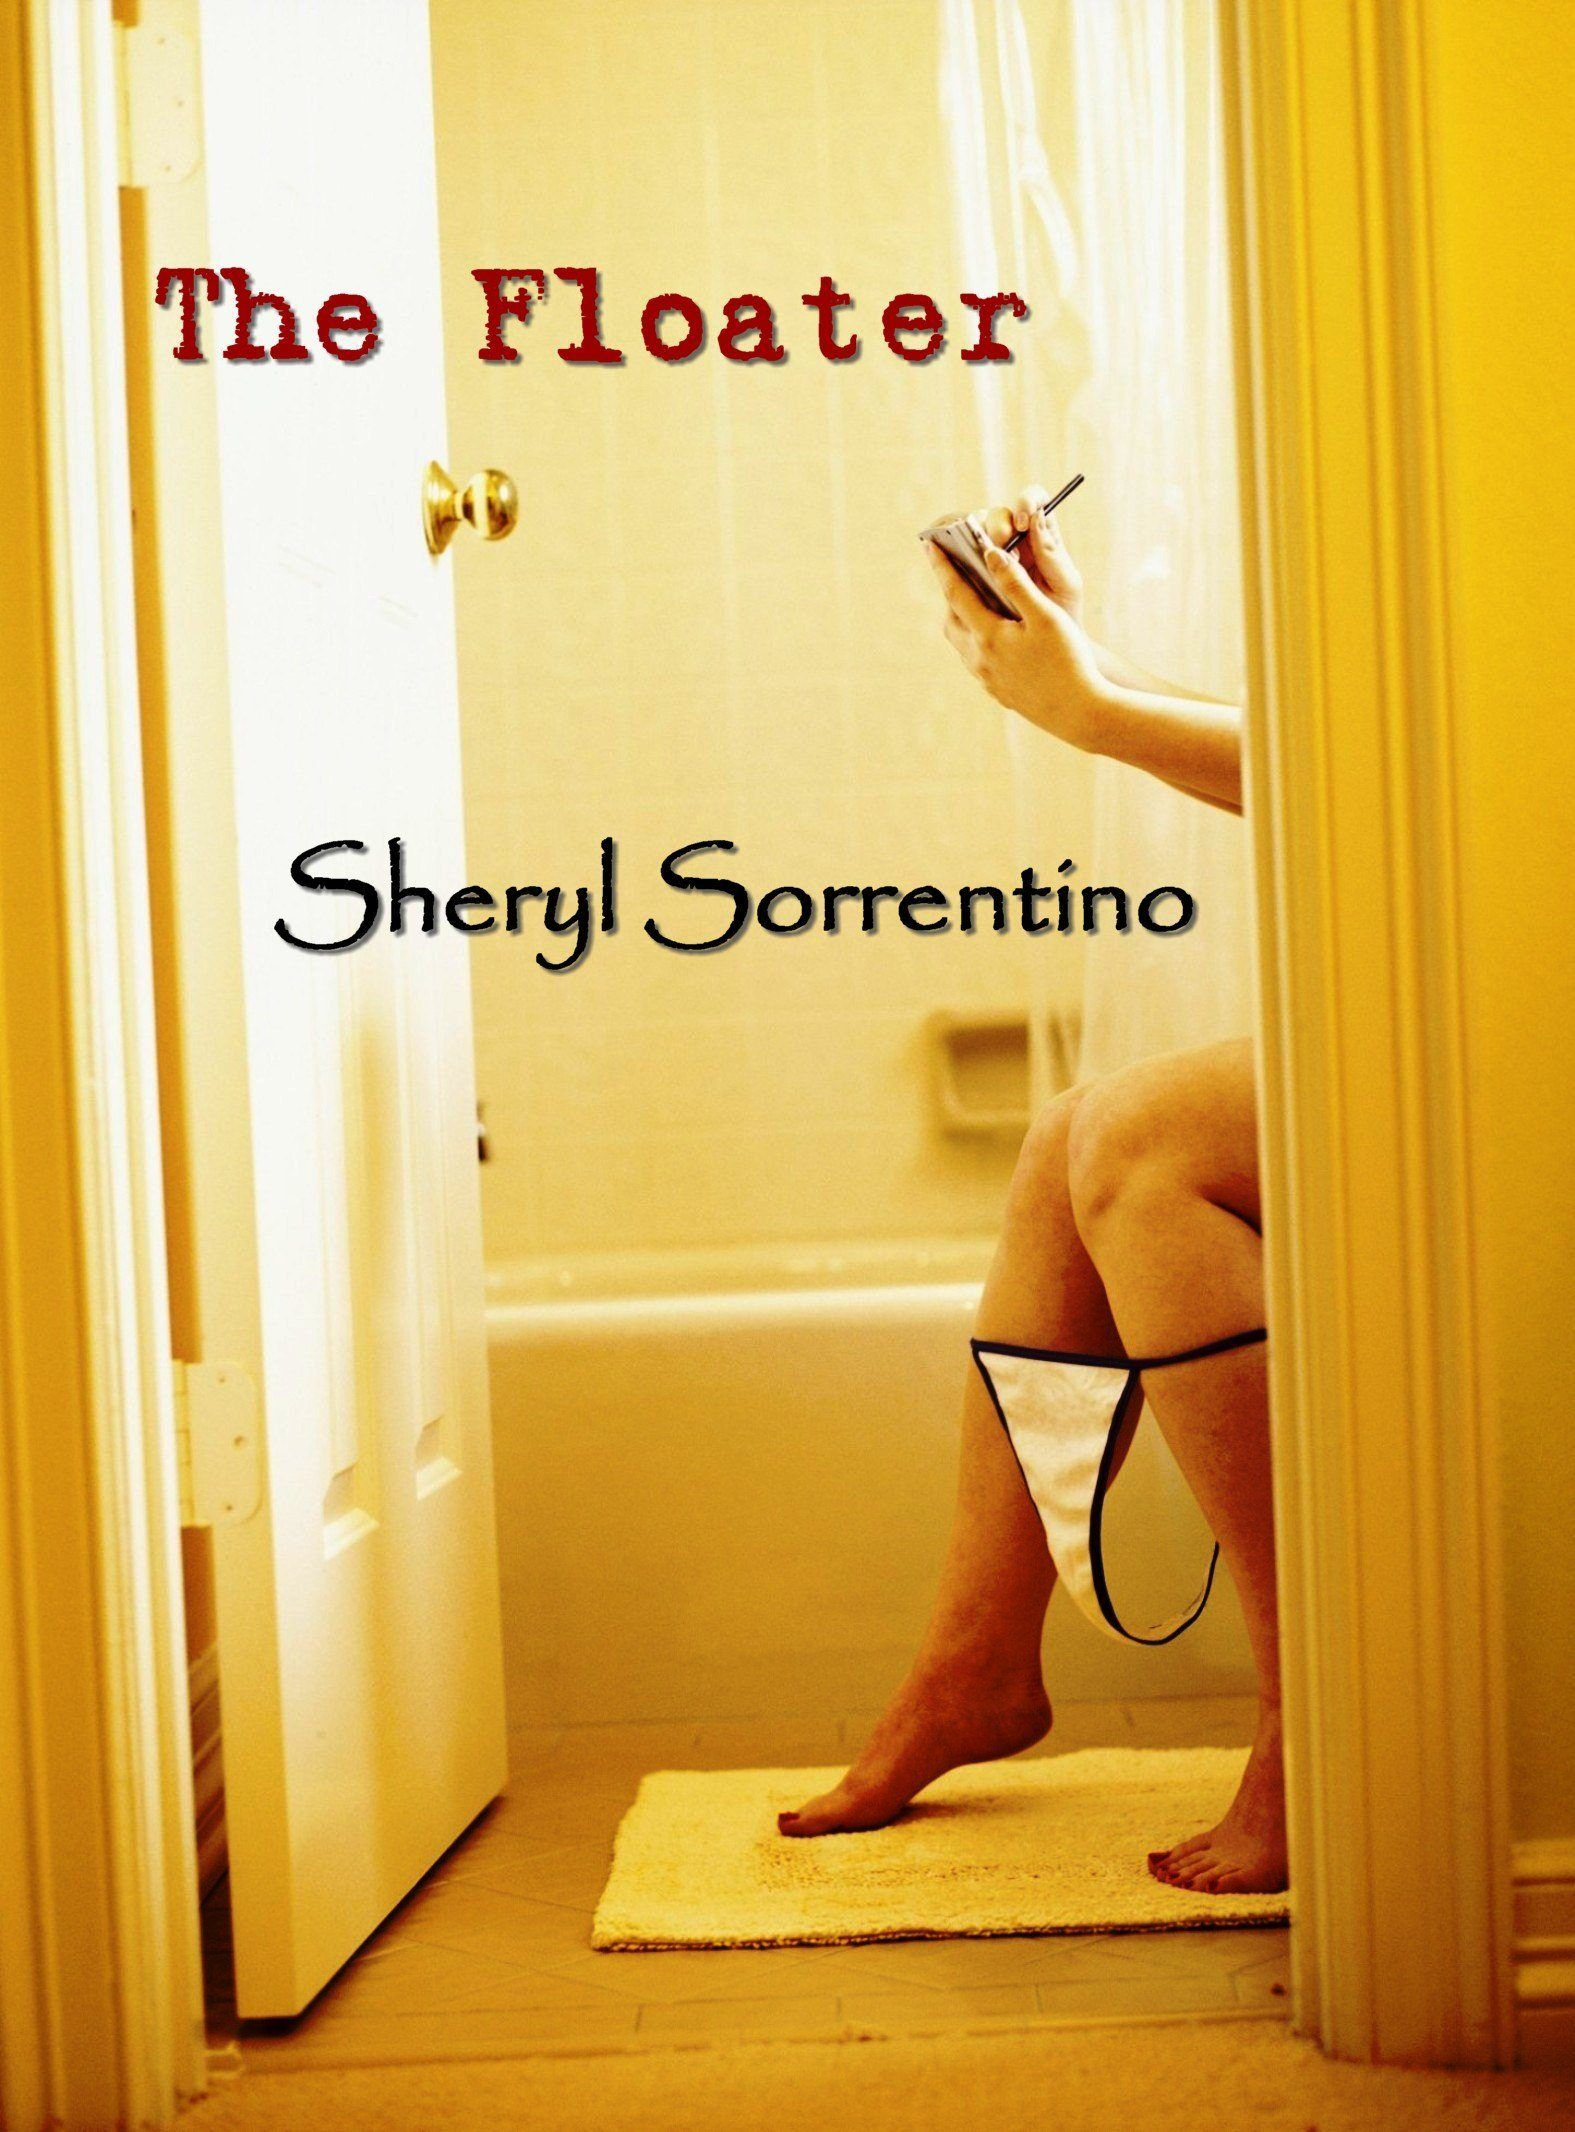 The Floater